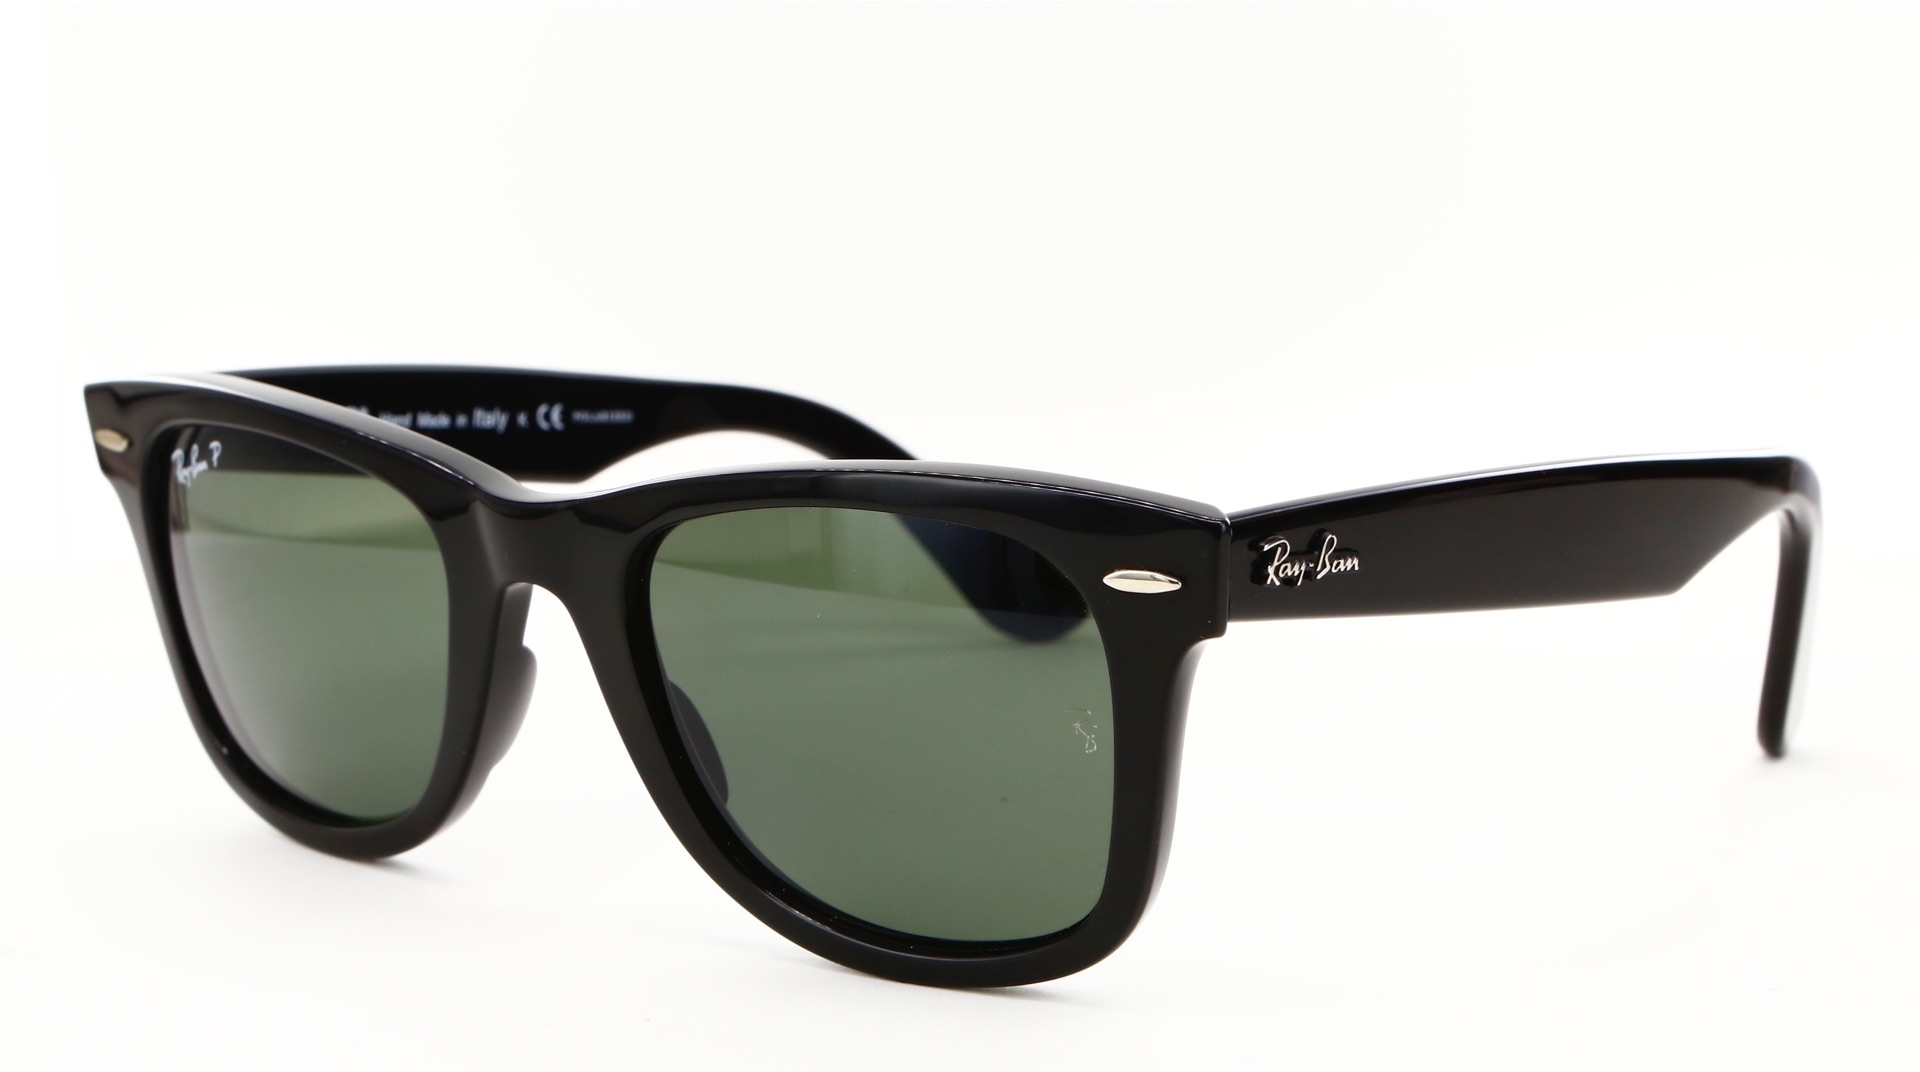 Ray-Ban - ref: 79117